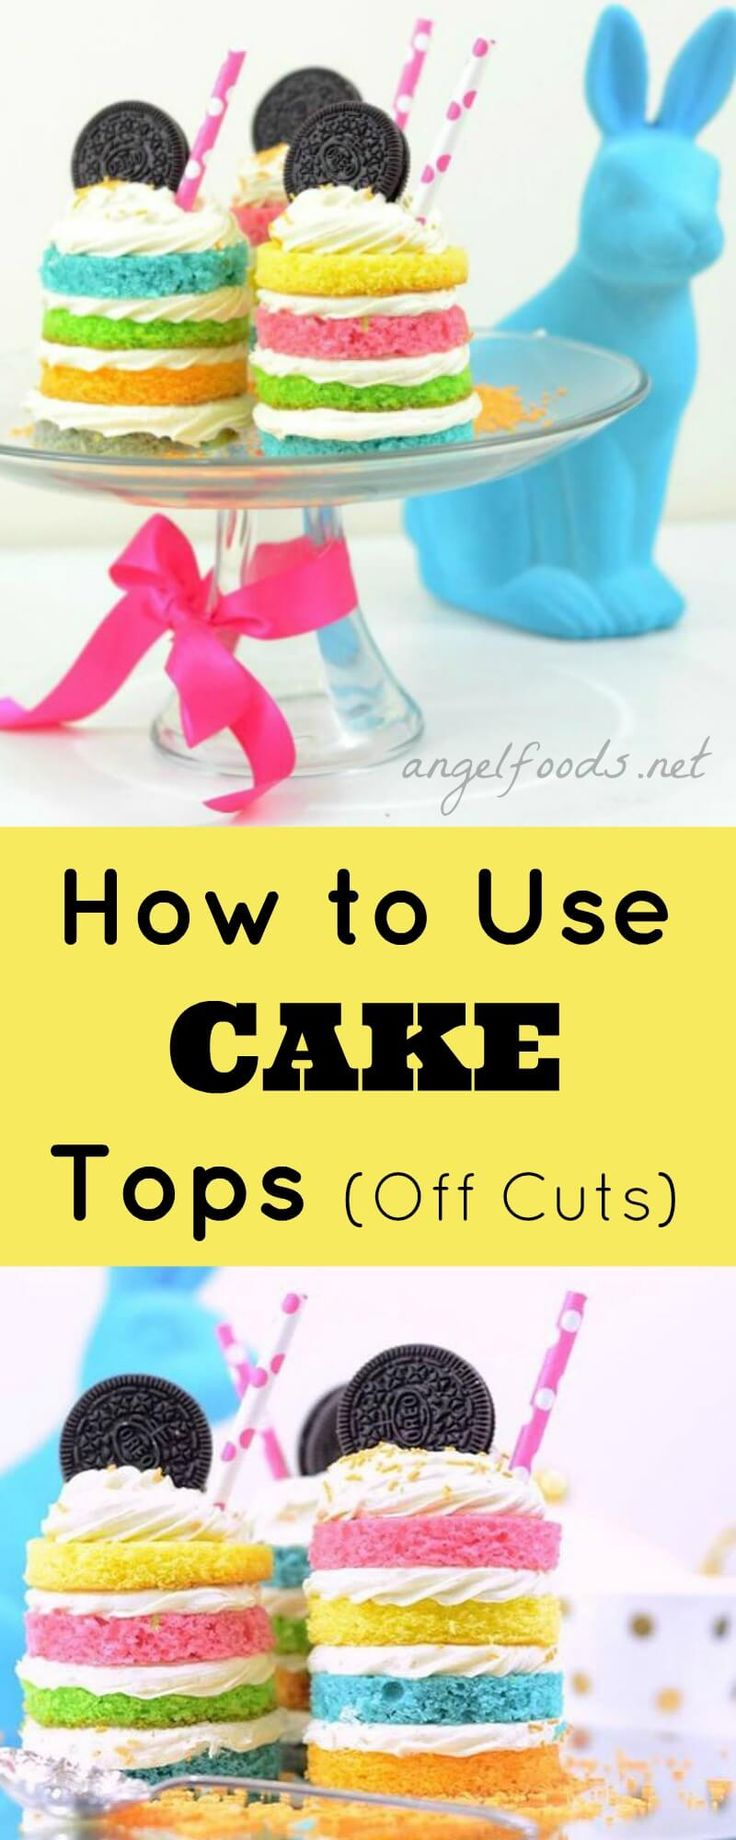 How to Use Cake Top Cut Off's   Rainbow layer mini cakes   Using your cake cut offs (or off cuts) and turn it into something you can sell, with mini rainbow layer cakes! If you are sick of wasting your cake that you cut off, throwing food away always makes you cringe and try to avoid throwing as we hate so much cake being wasted!